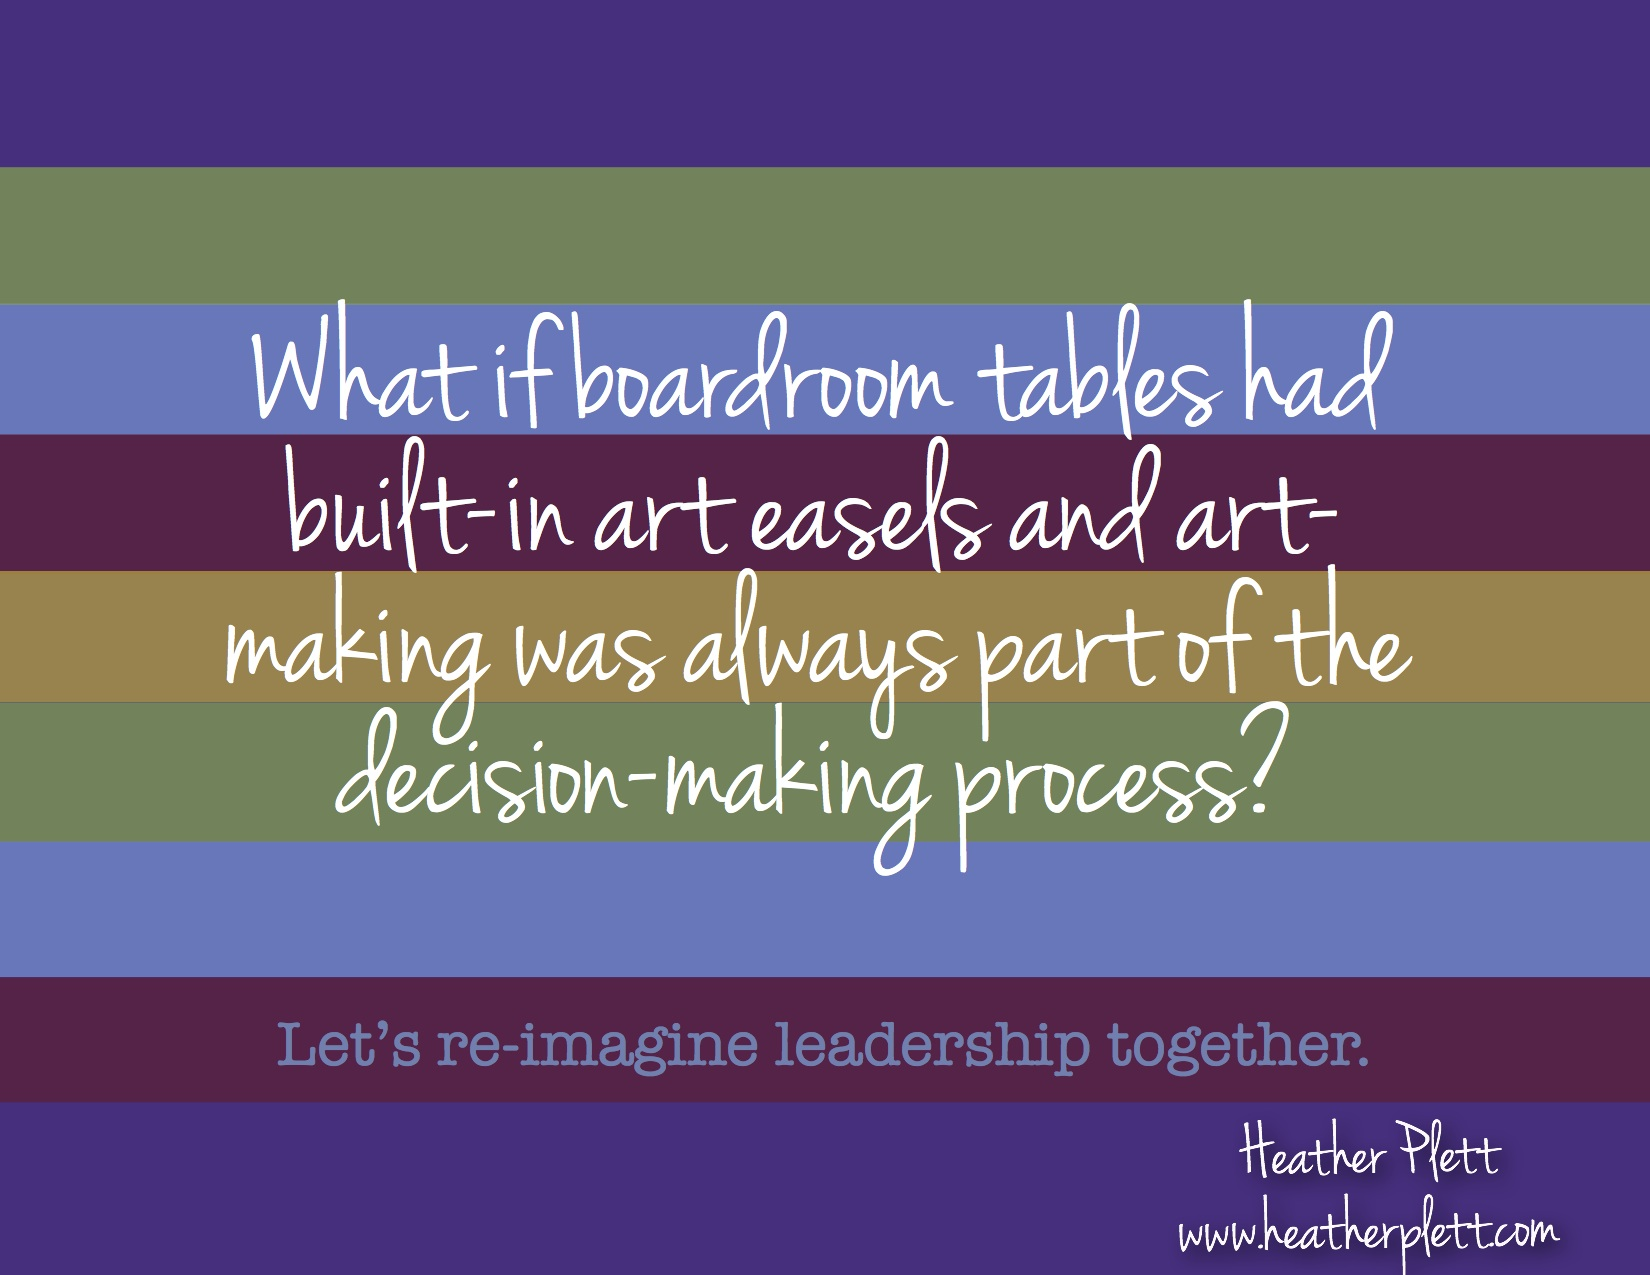 Wild At Heart Quotes Quotesgram: Re-Imagining Leadership For Our Time